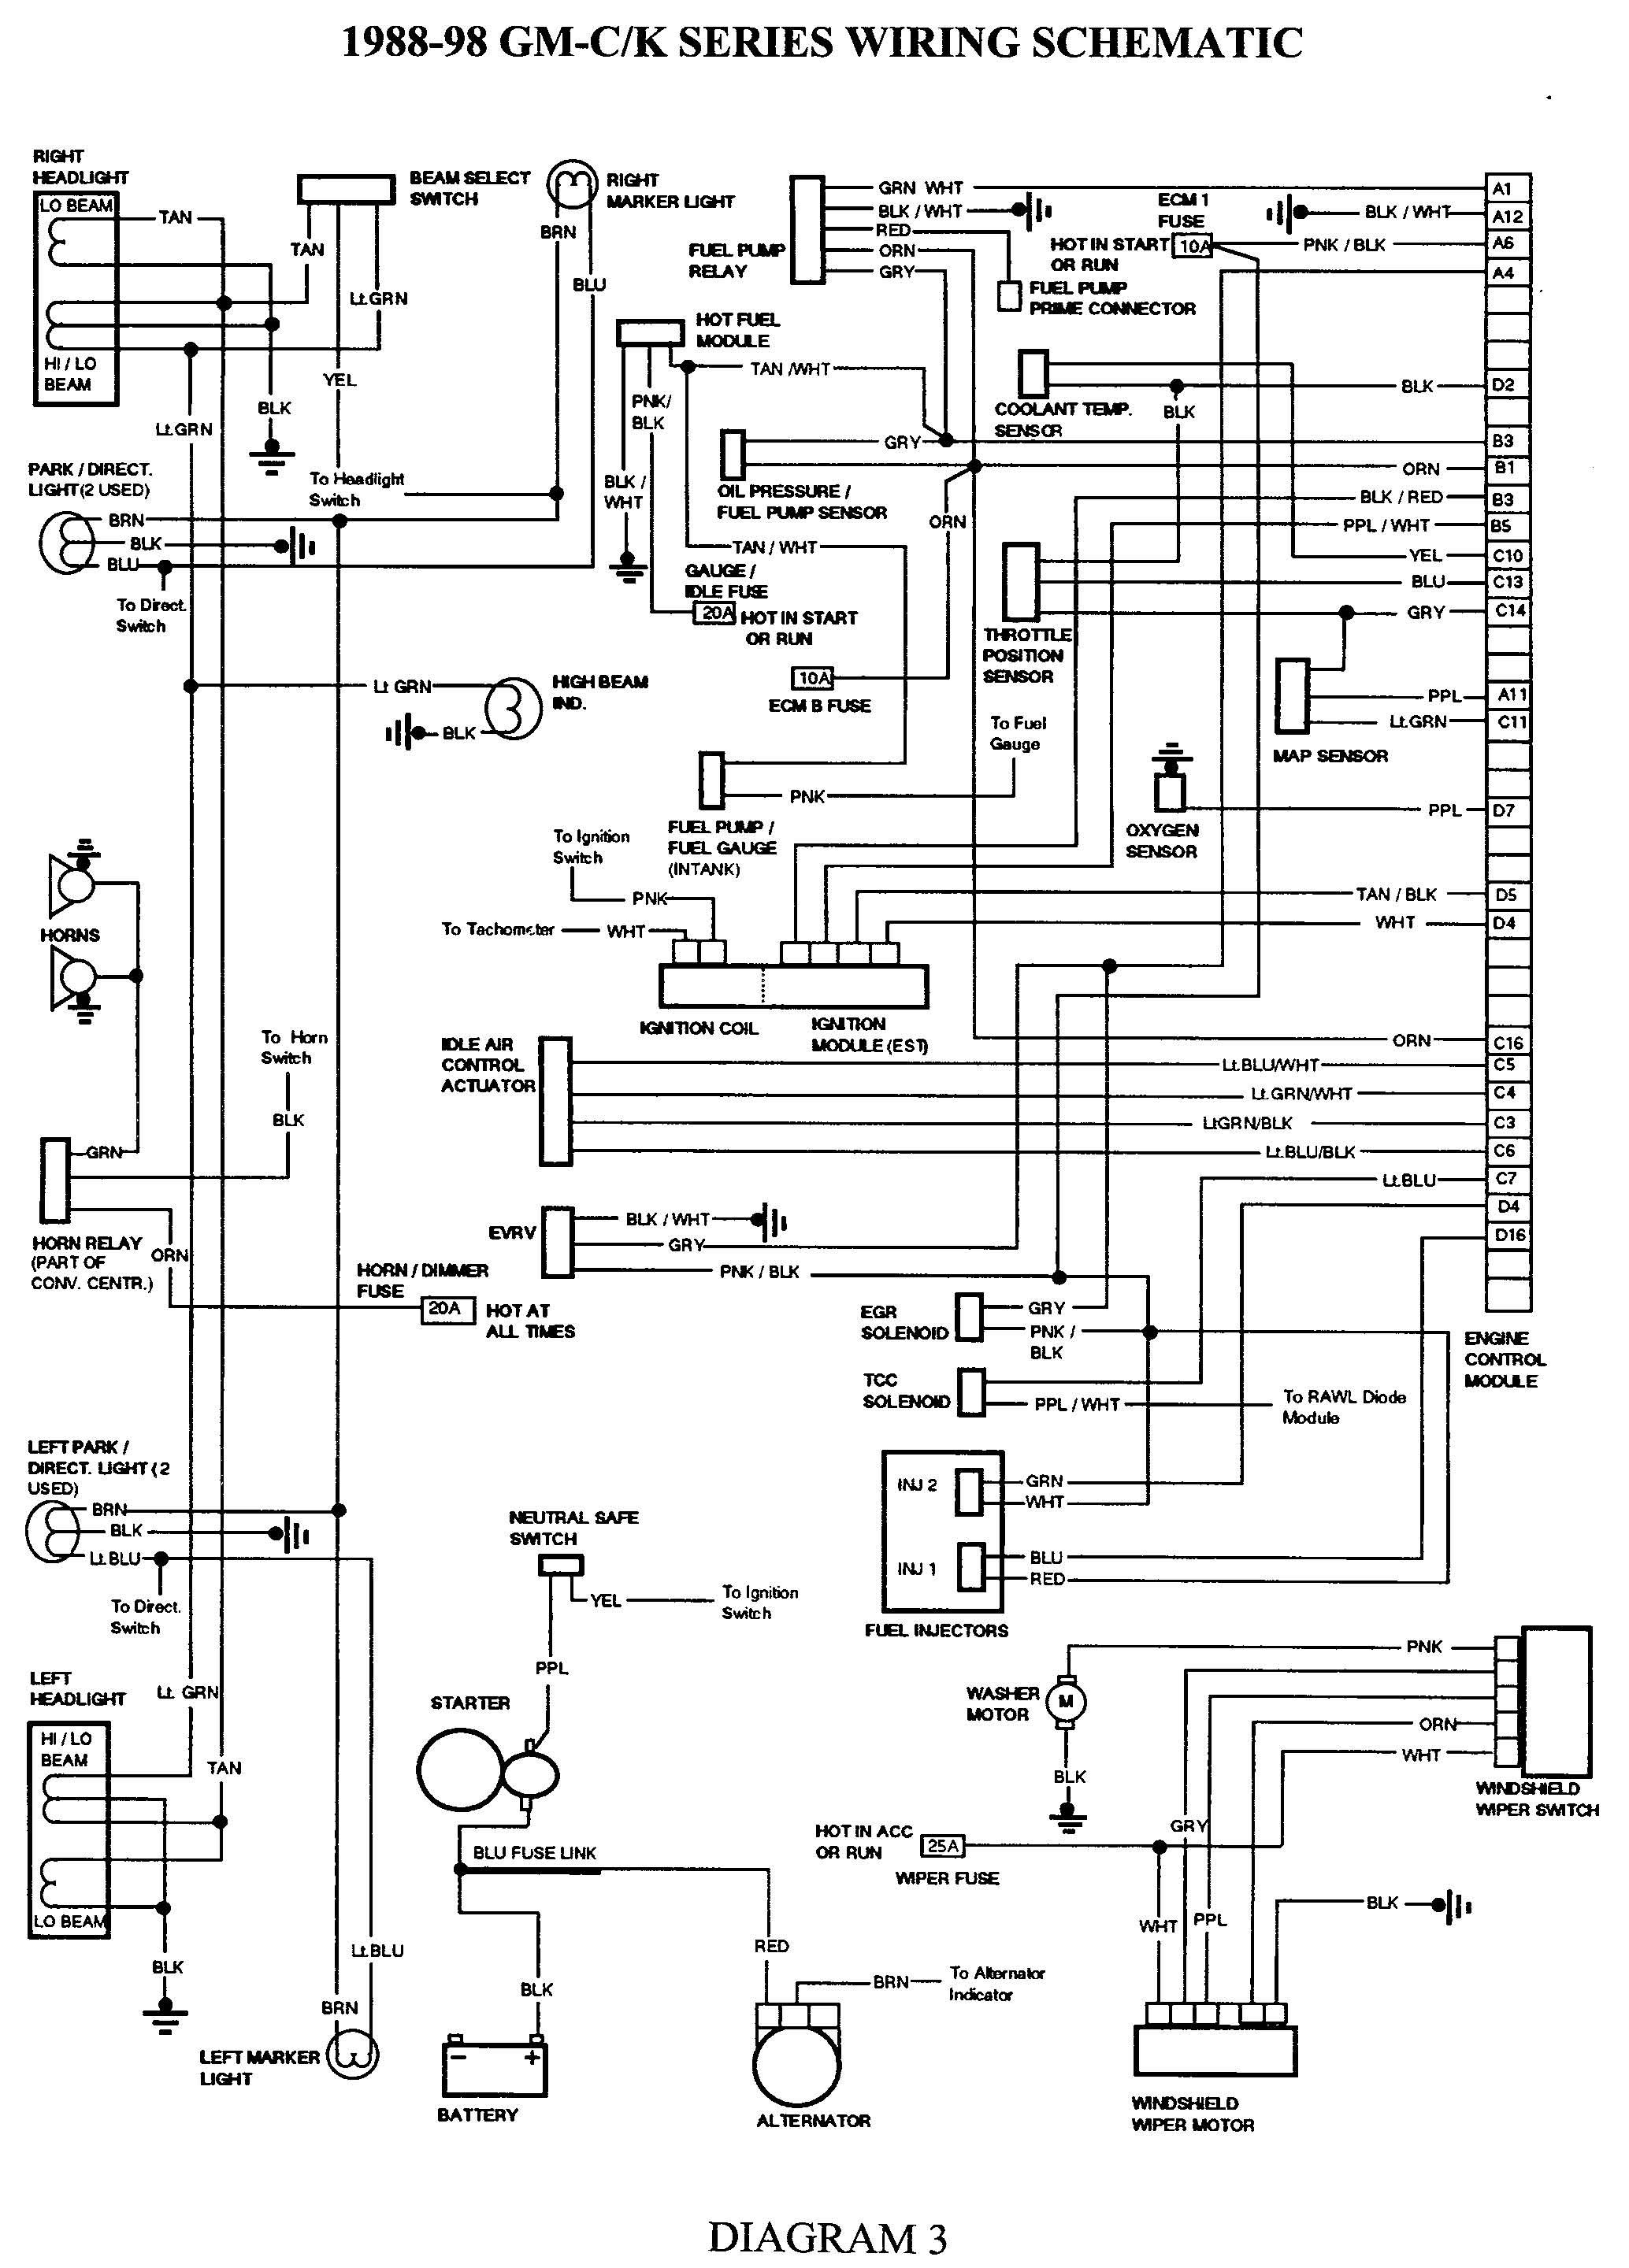 chevy truck wiring harness diagram electrical diagrams schematics 1984 chevy wiring diagram 84 chevy wiring diagram [ 2068 x 2880 Pixel ]